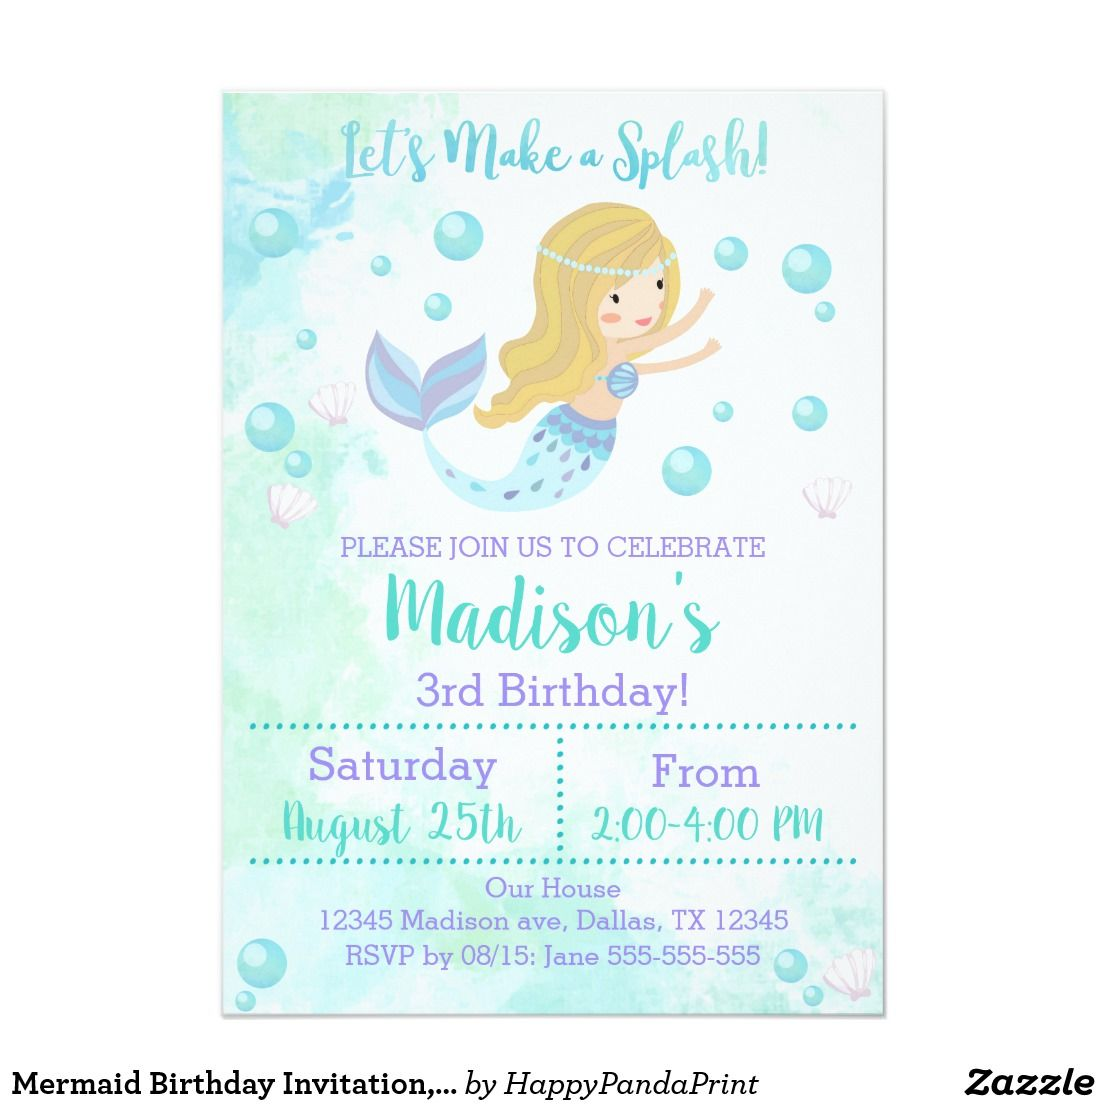 Mermaid Birthday Invitation Blonde Mermaid Invitation